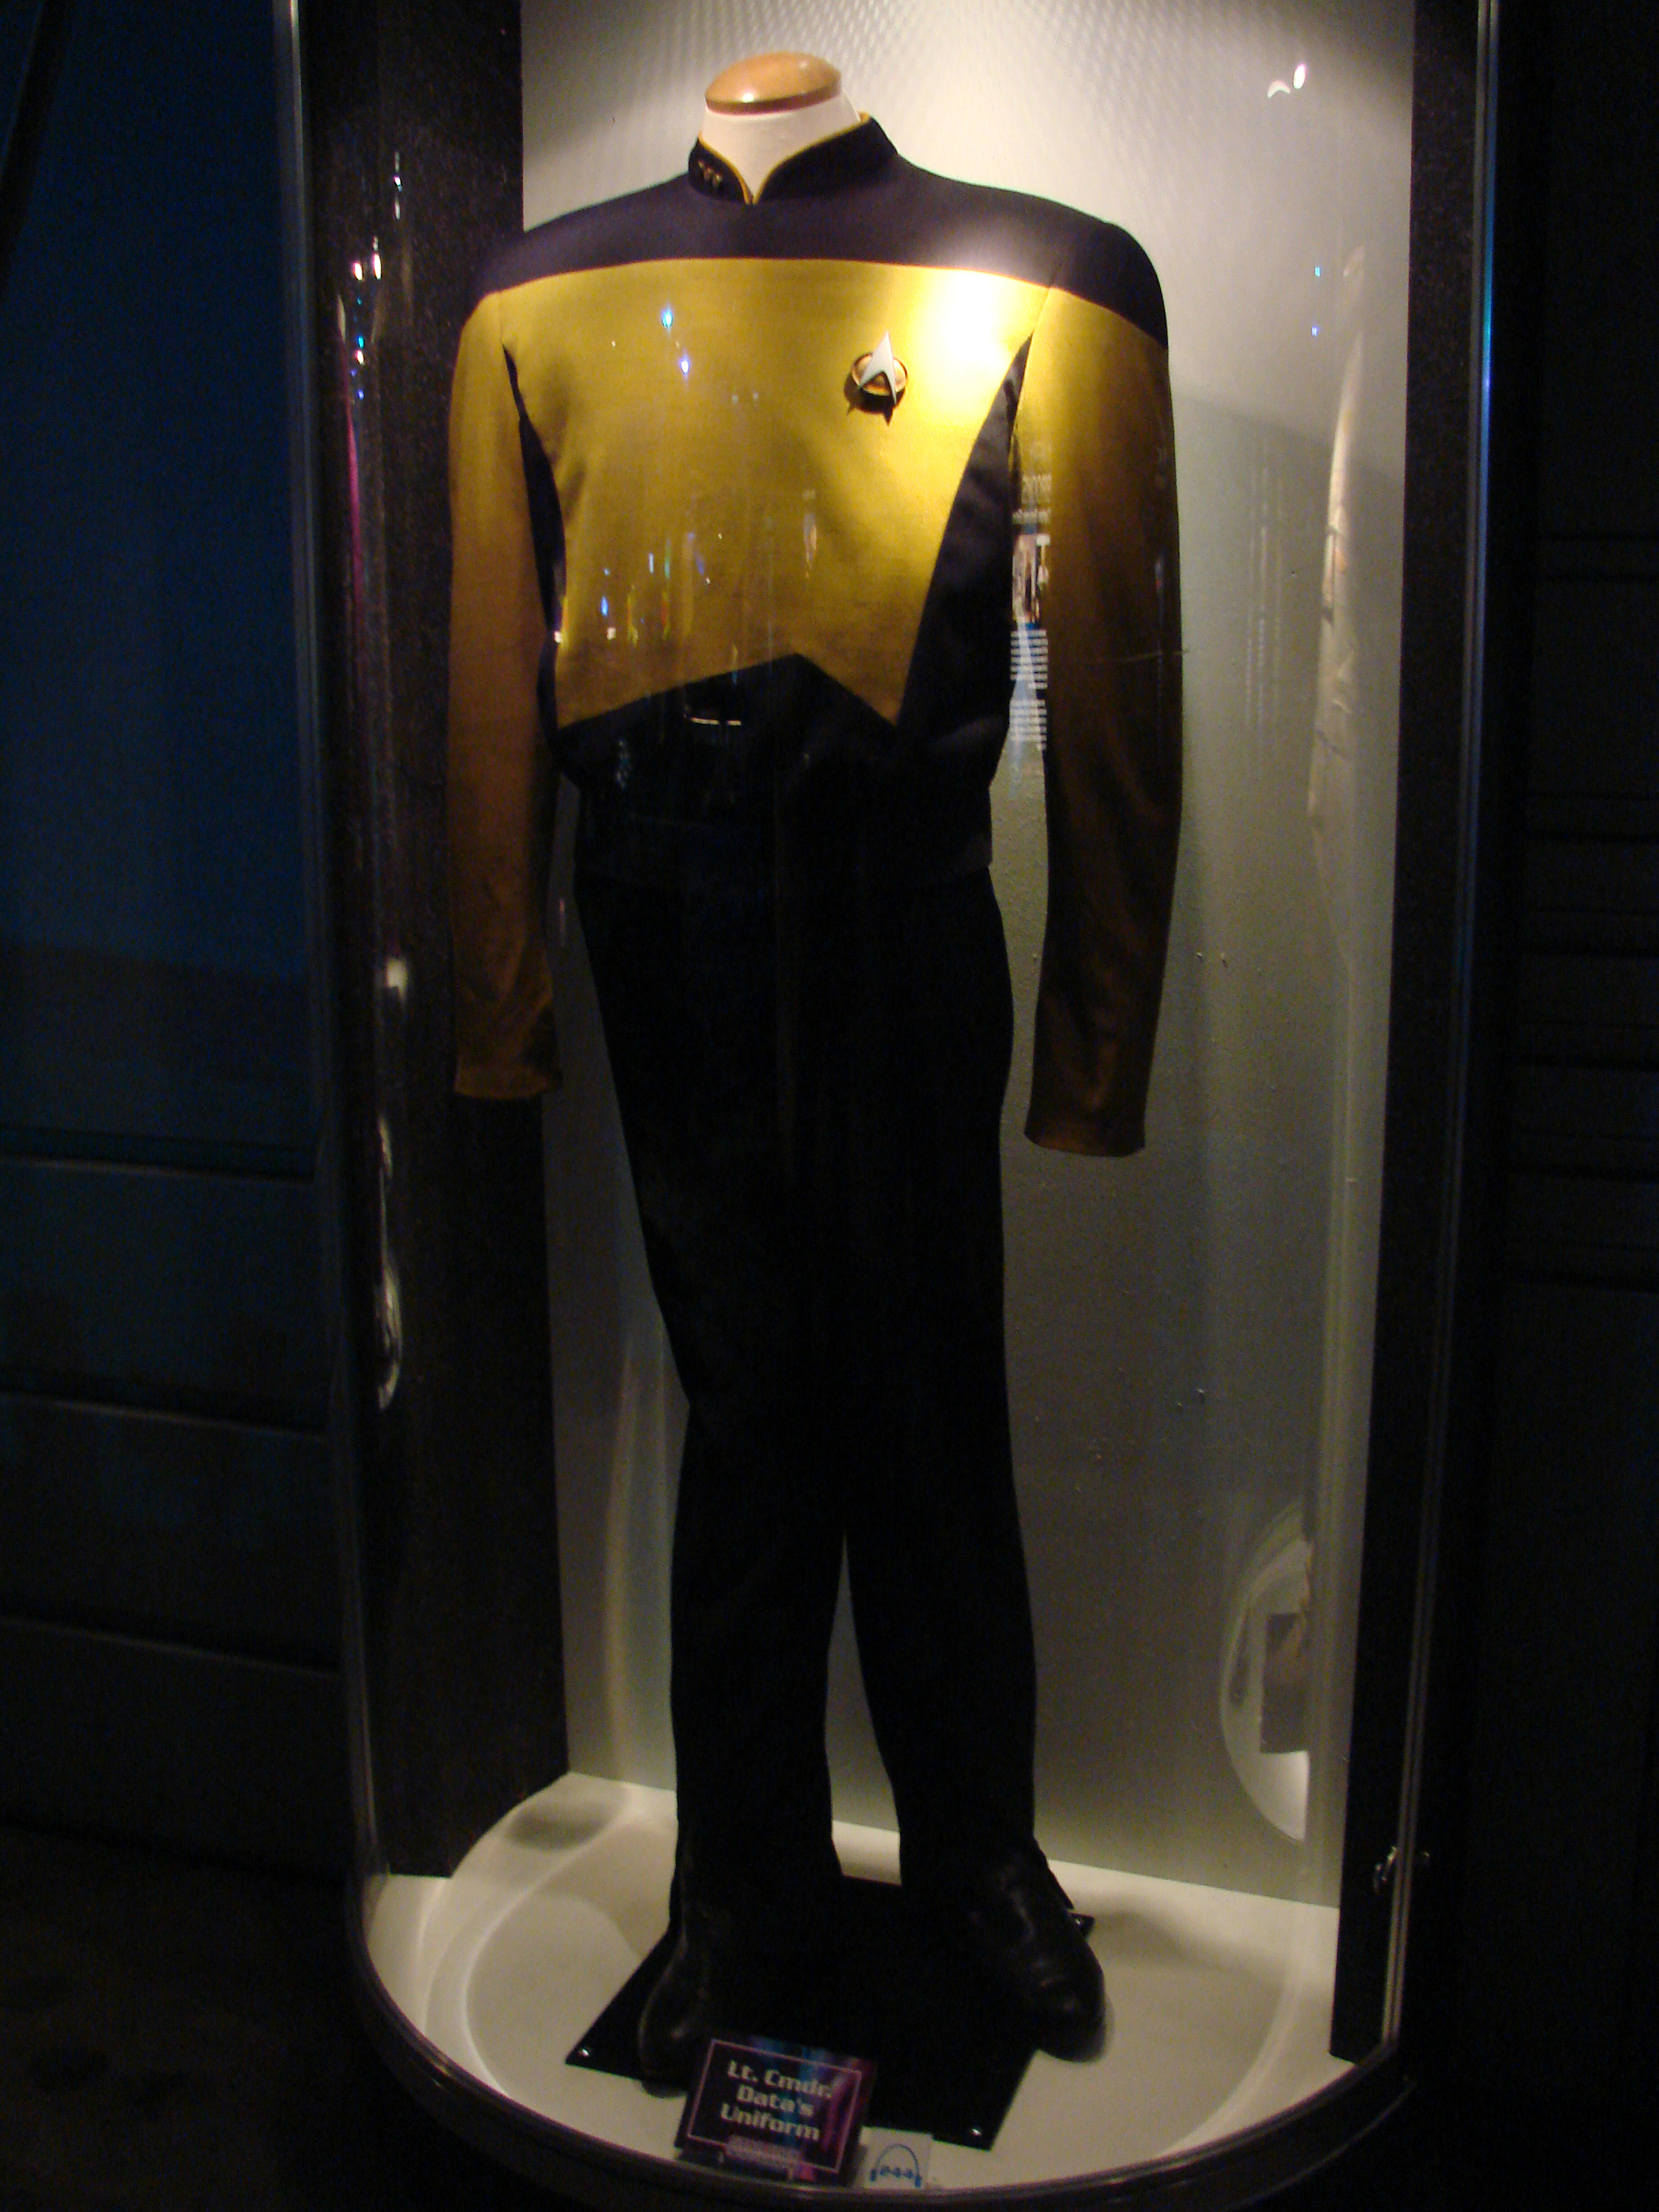 Lt. Cmdr. Data's Uniform